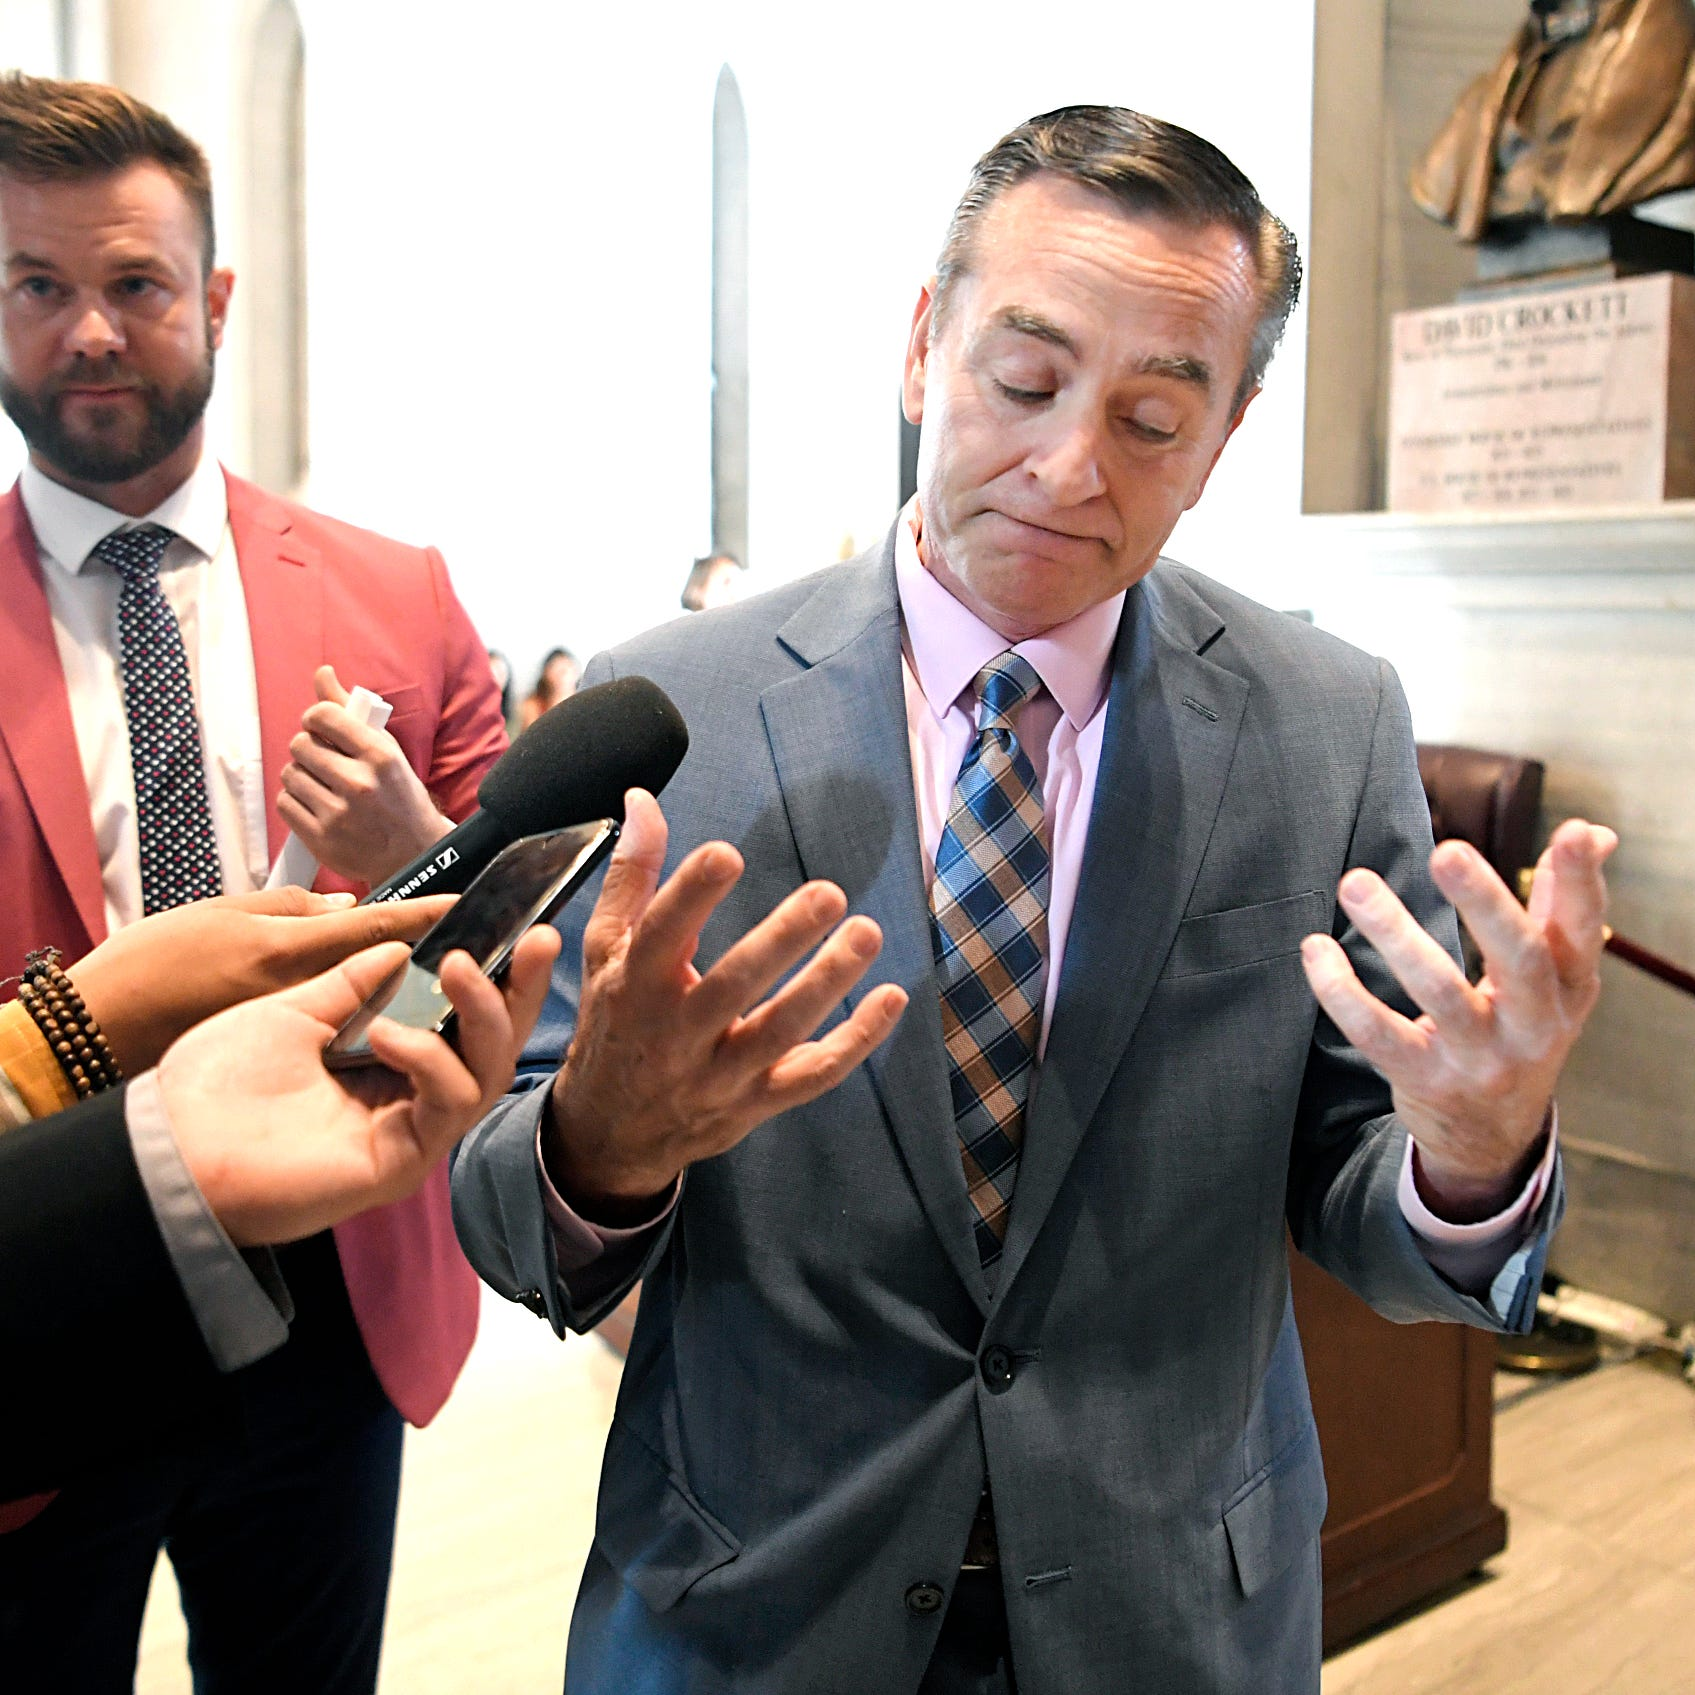 House Speaker Glen Casada's top aide admits past cocaine use in legislative office building